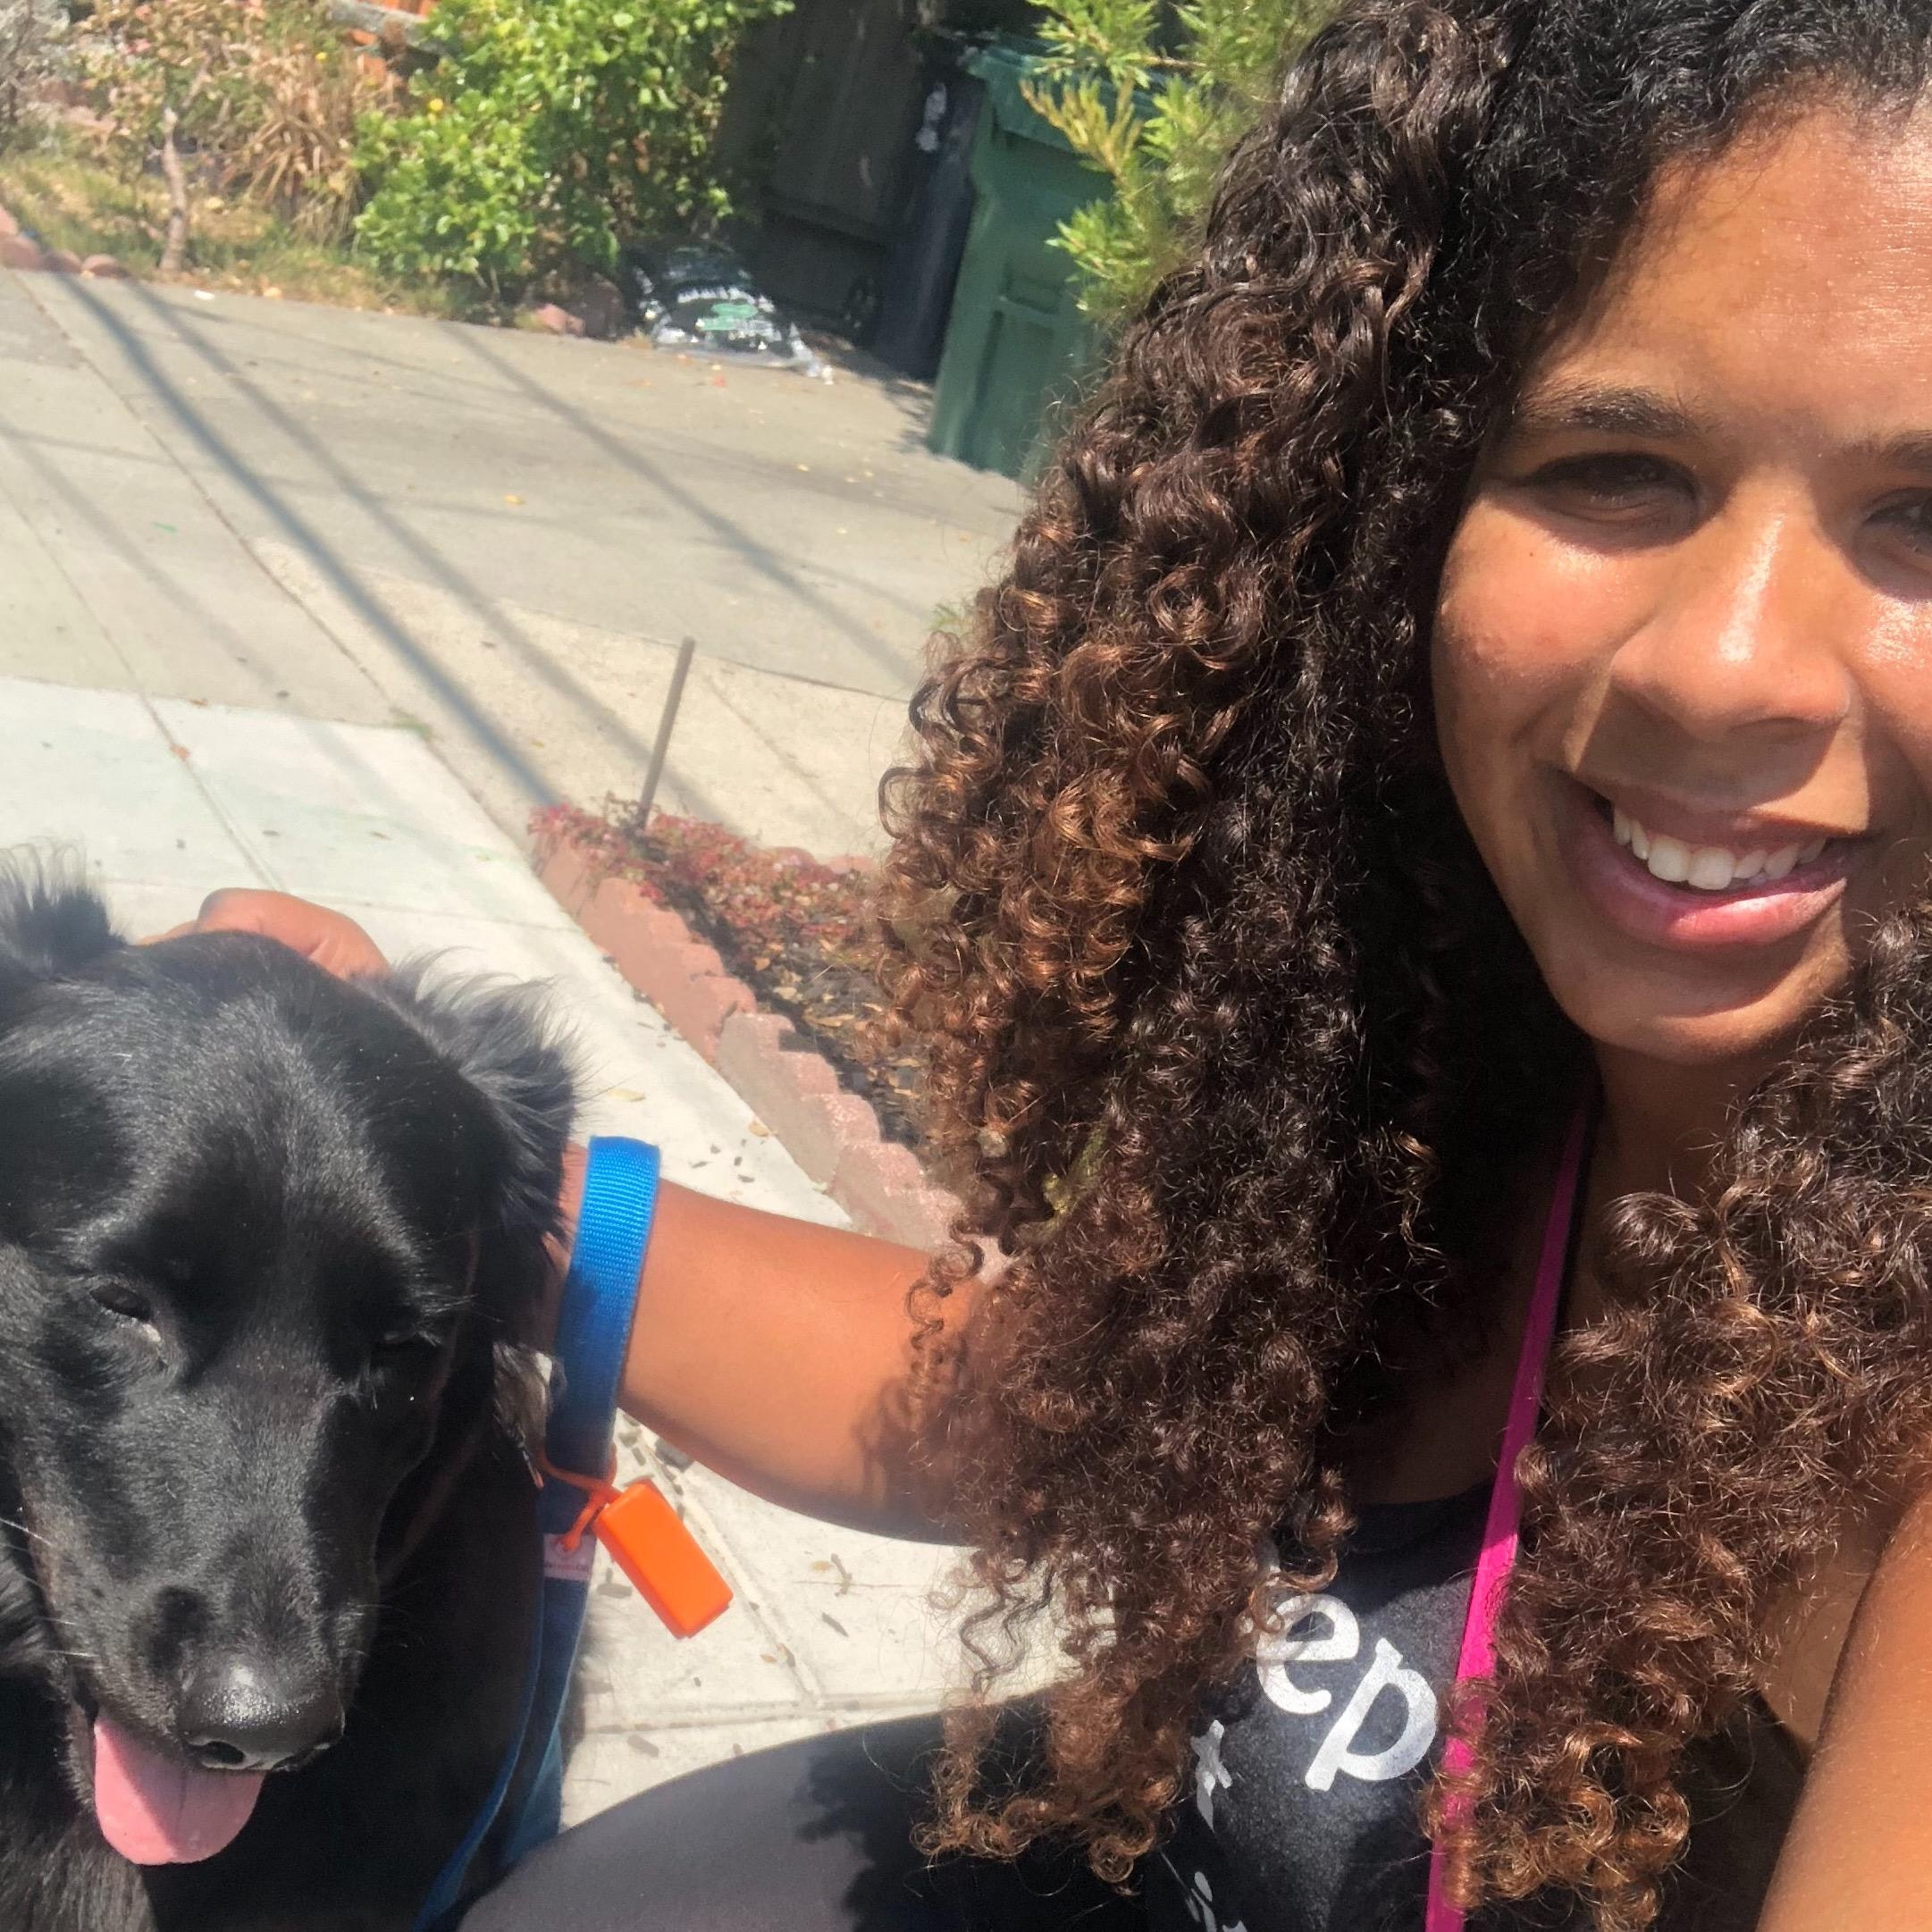 pet sitter Andrielle